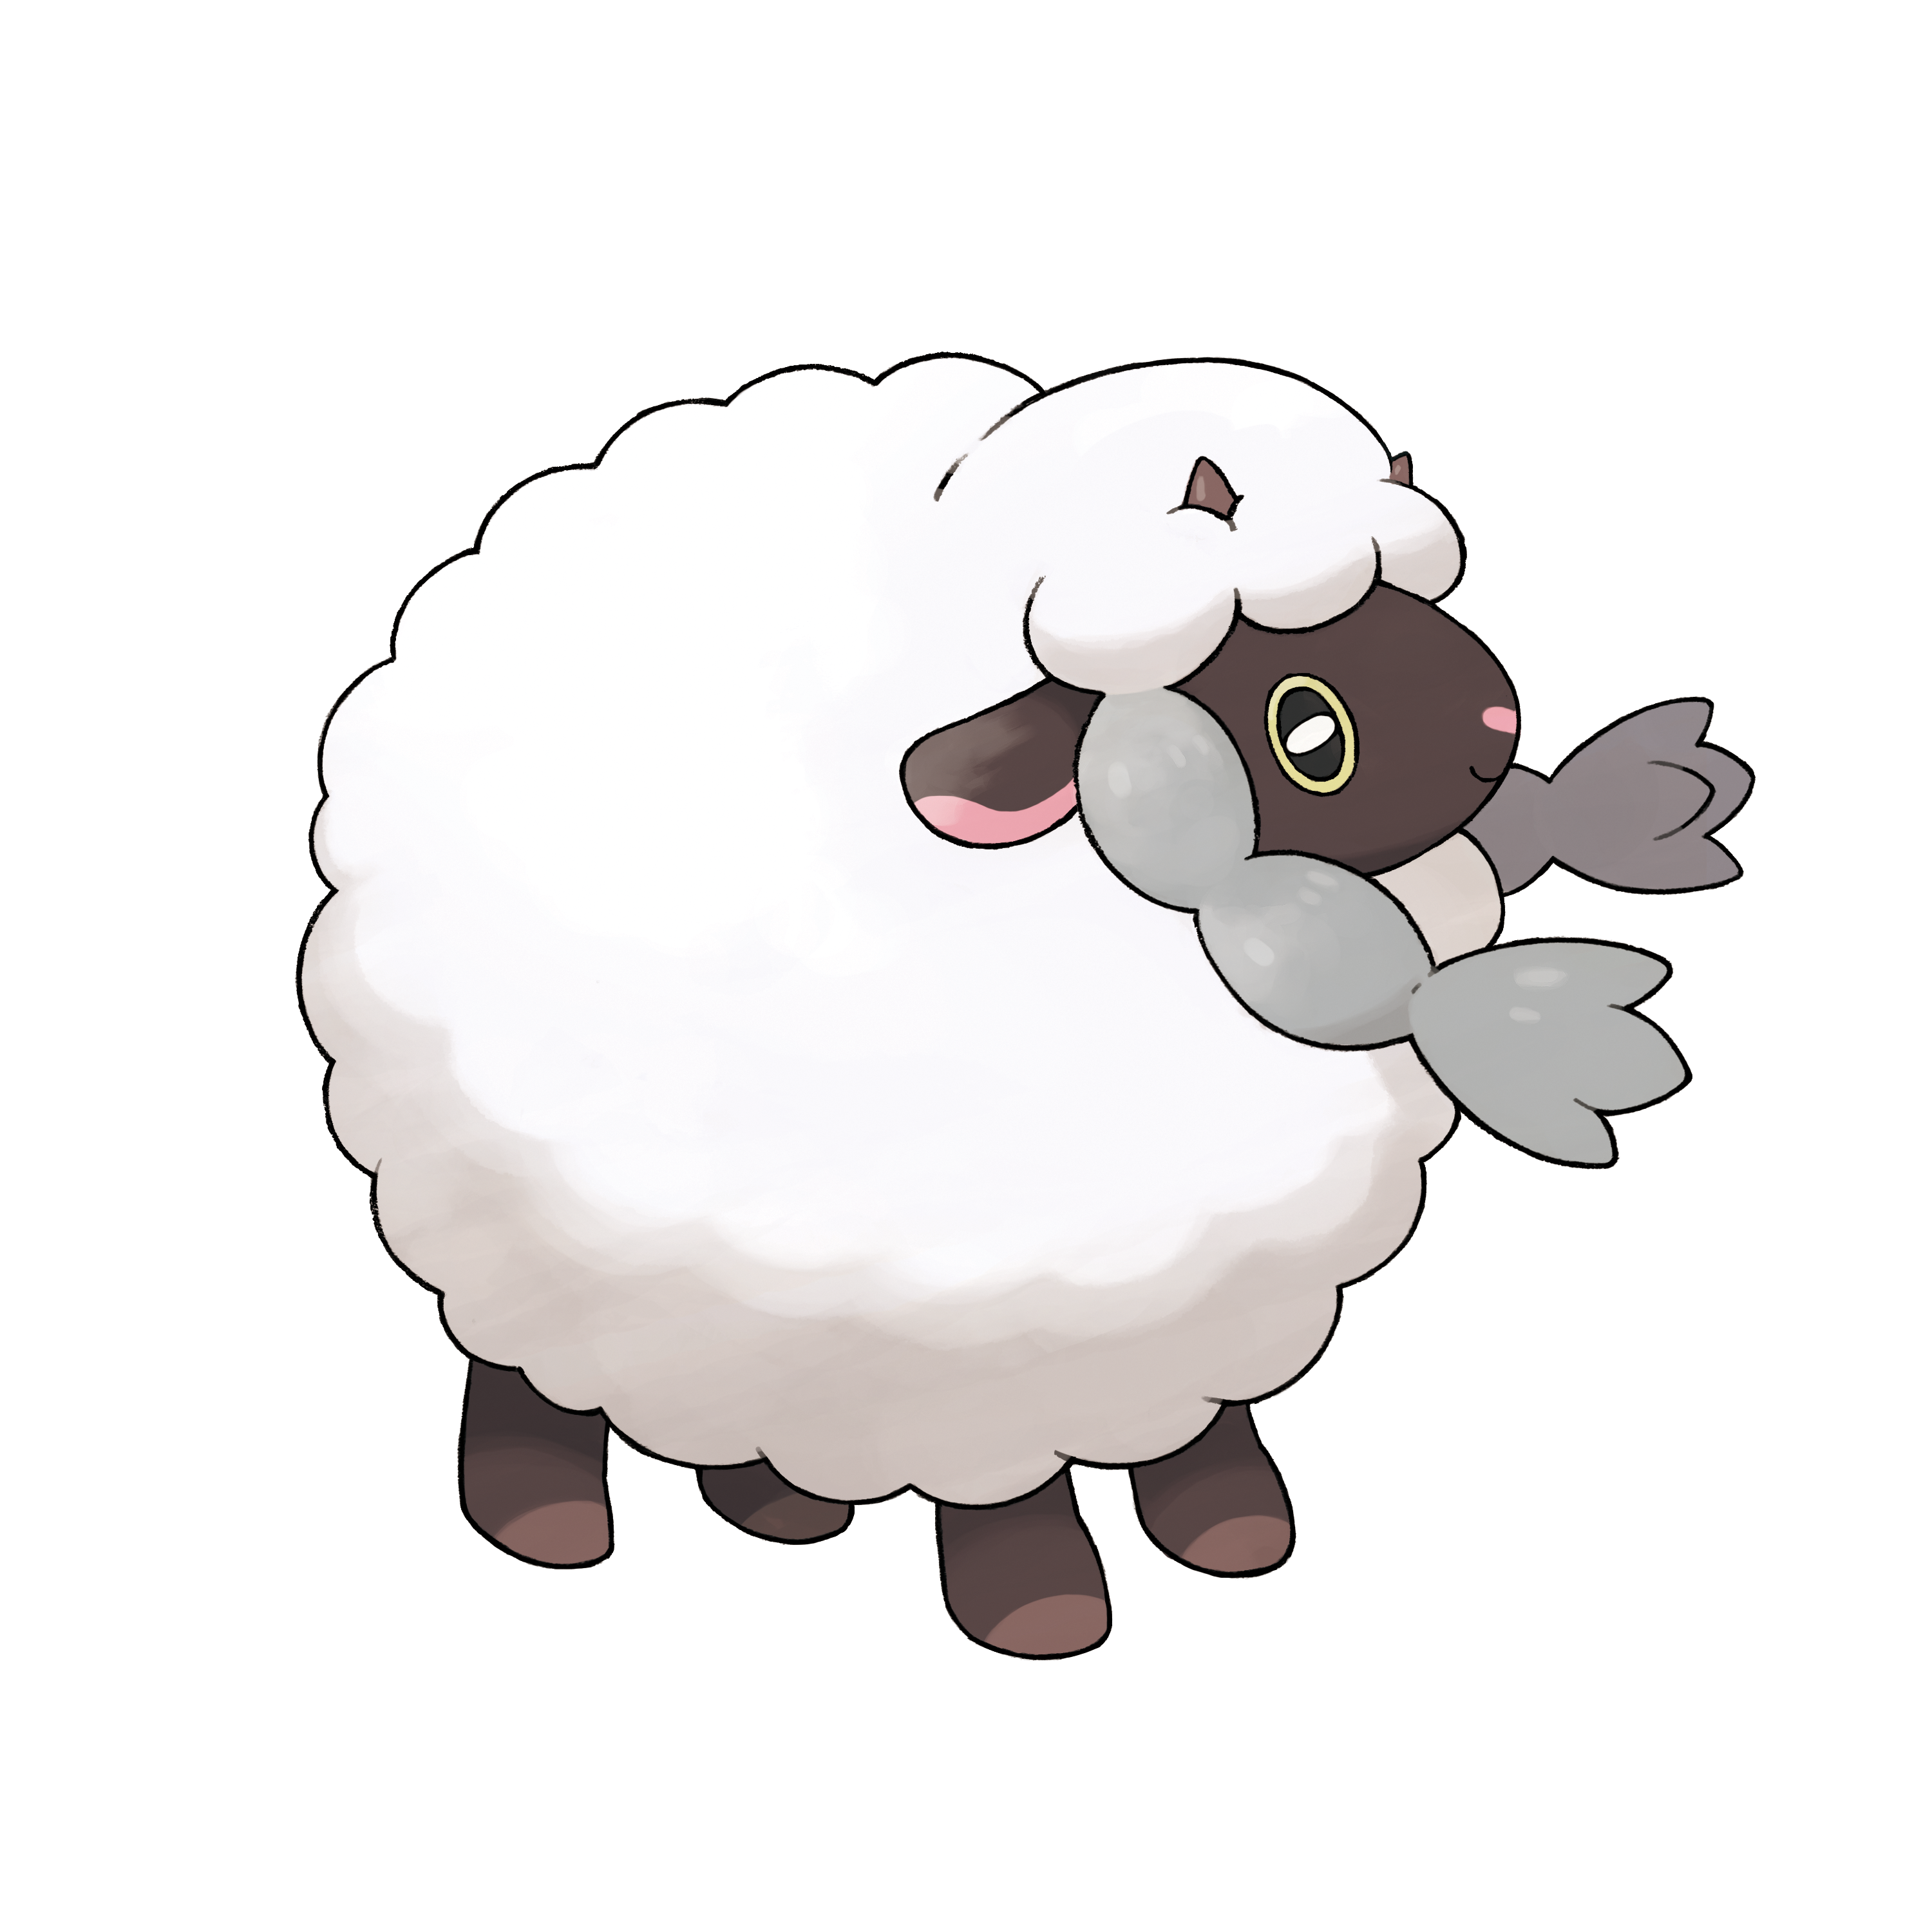 Wooloo_-_Pokemon_Sword_and_Shield.png